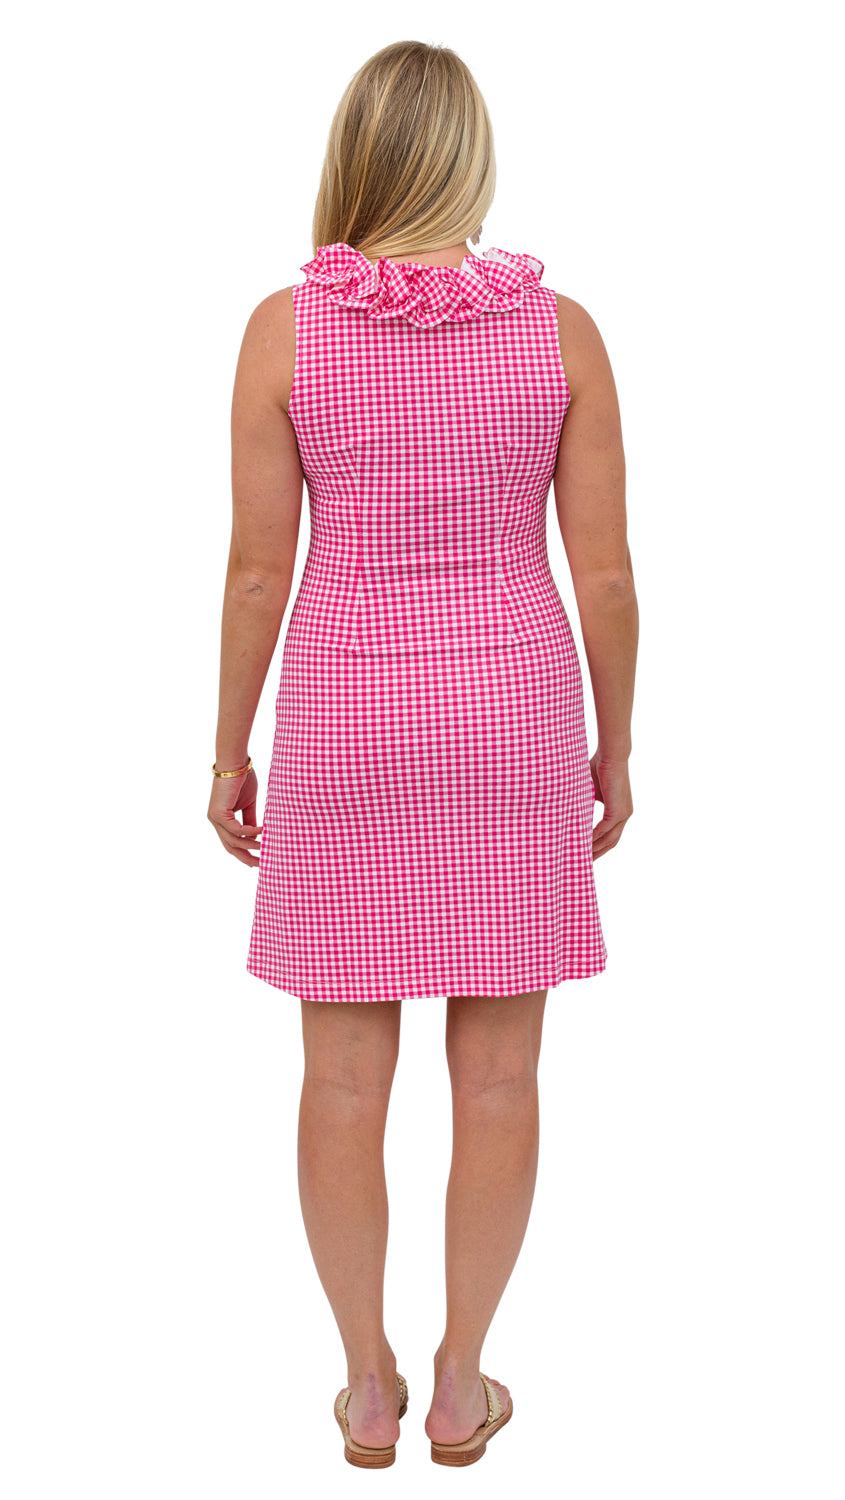 Cricket Dress Sleeveless - Magenta Small Check